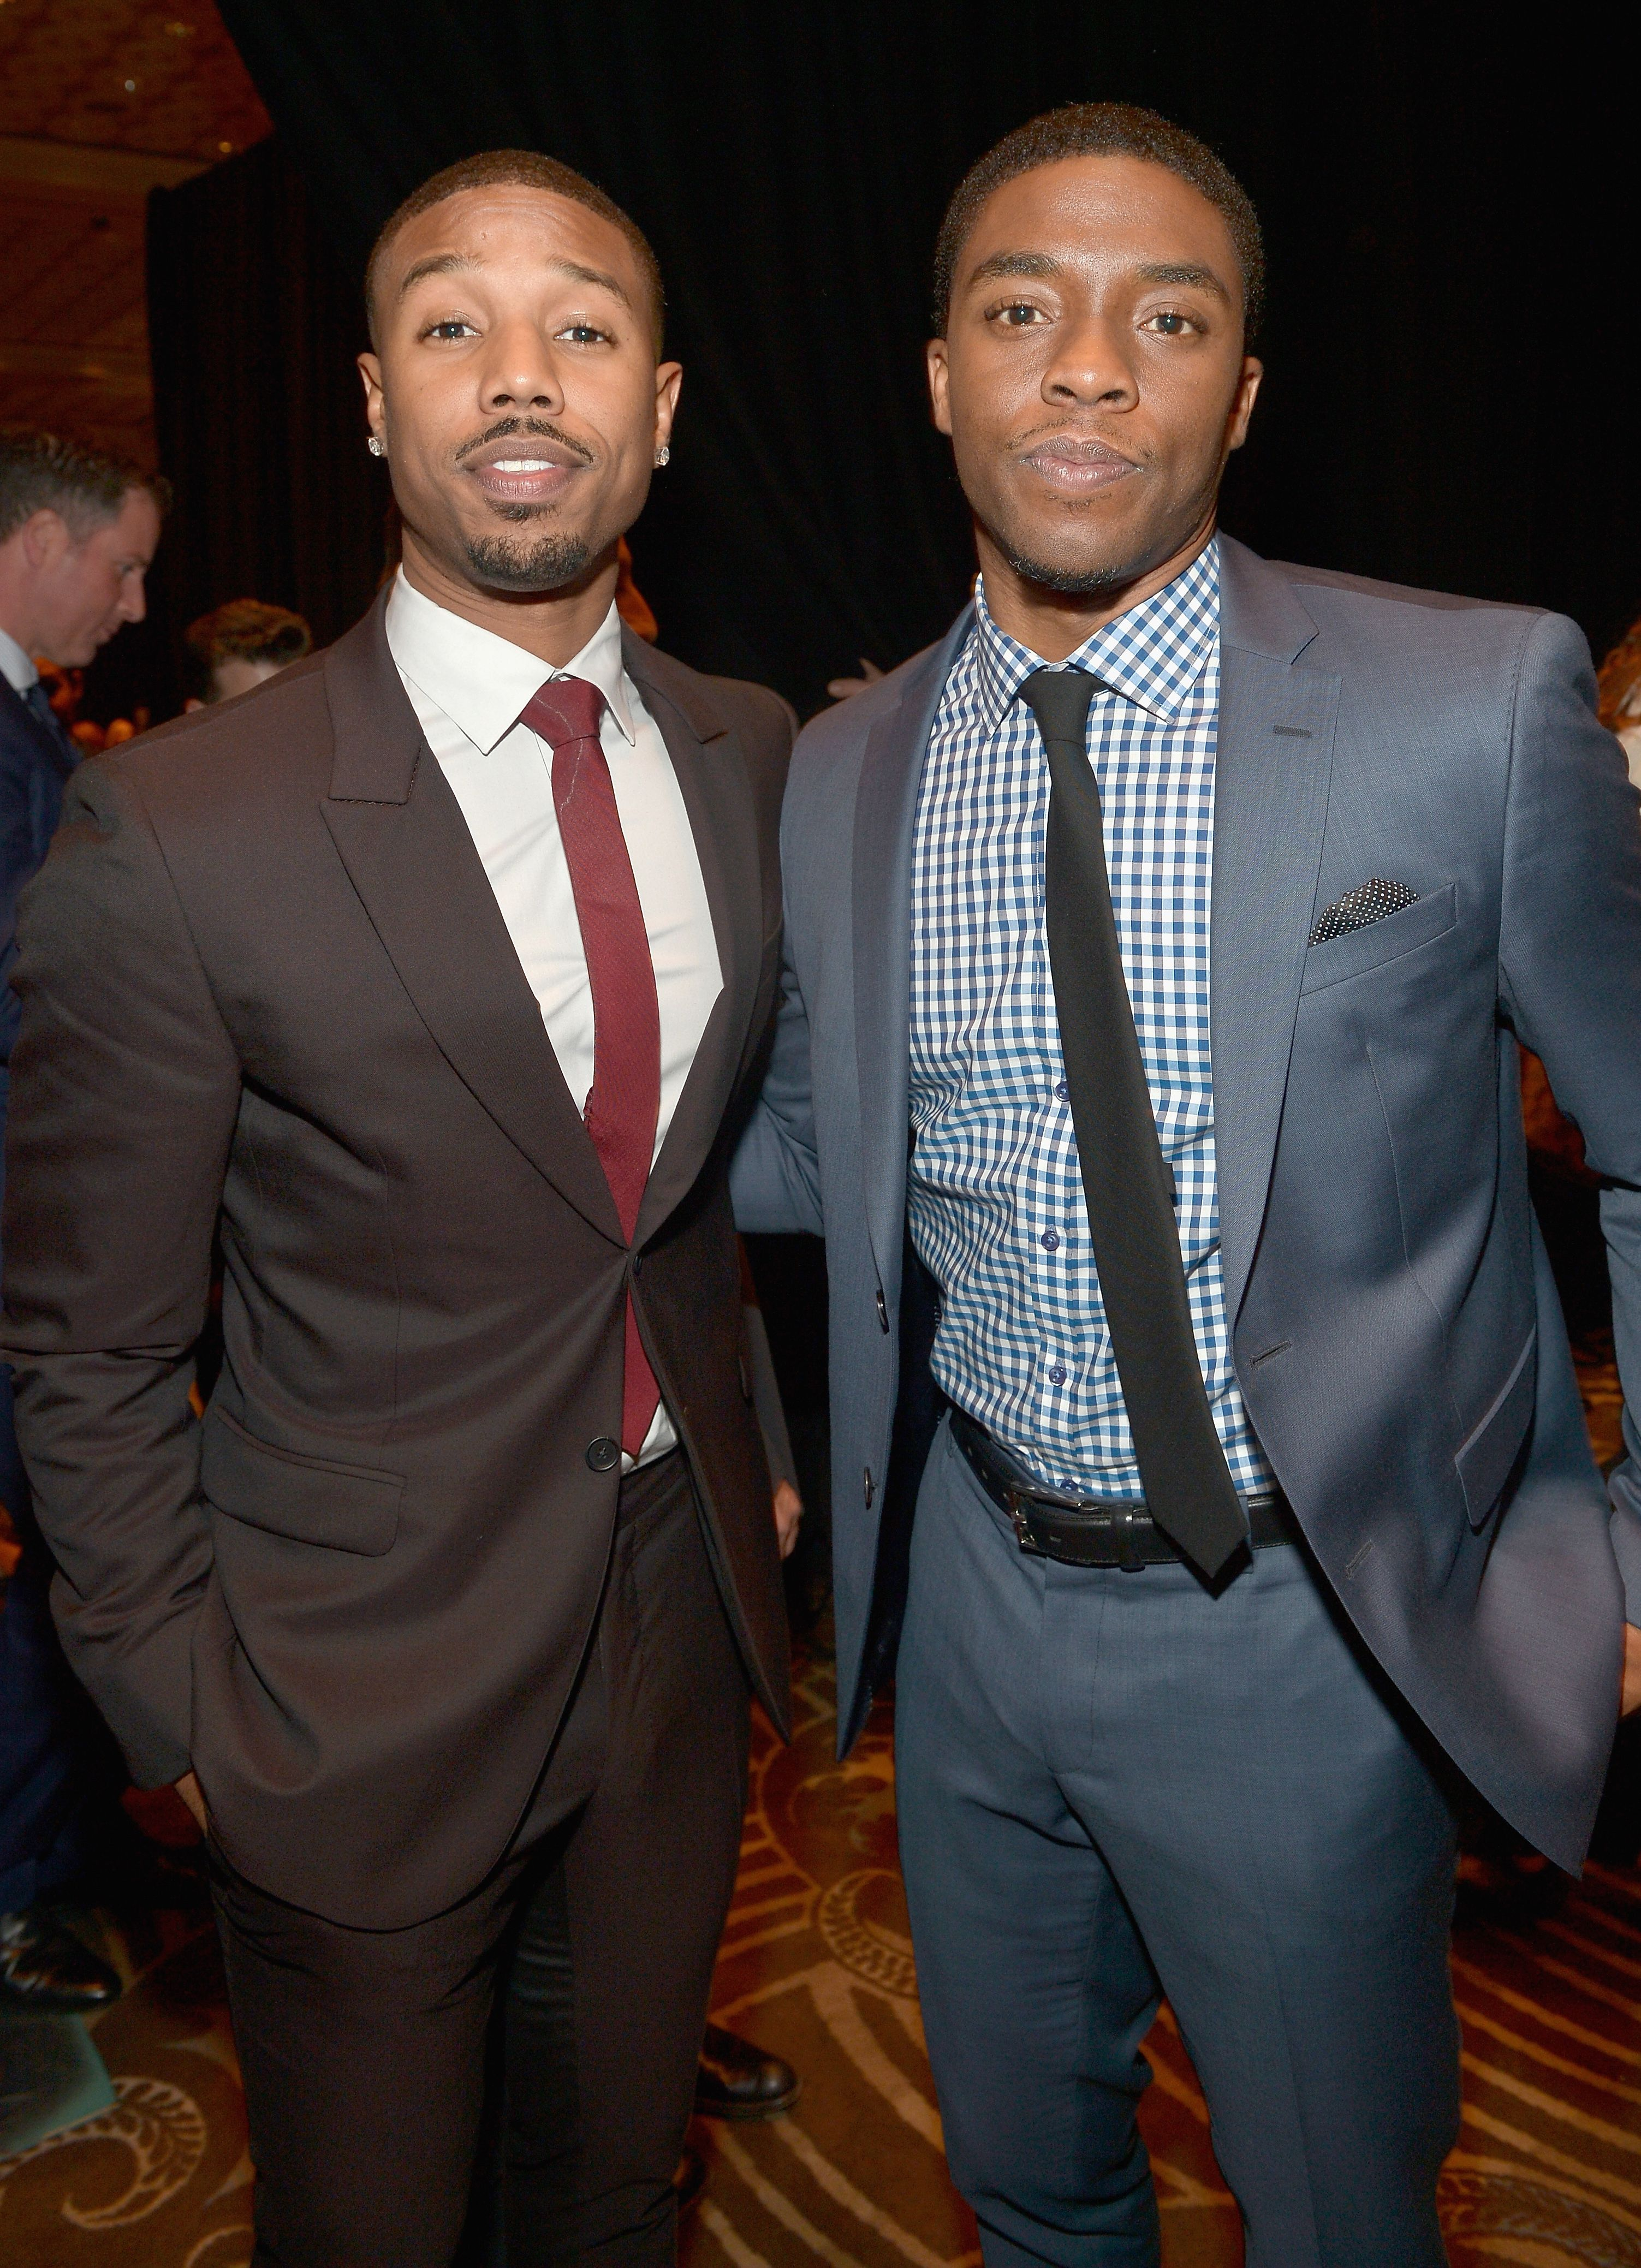 Michael B. Jordan and Chadwick Boseman attend The CinemaCon Big Screen Achievement Awards at The Colosseum at Caesars Palace on March 27, 2014 in Las Vegas, Nevada. | Photo: Getty Images